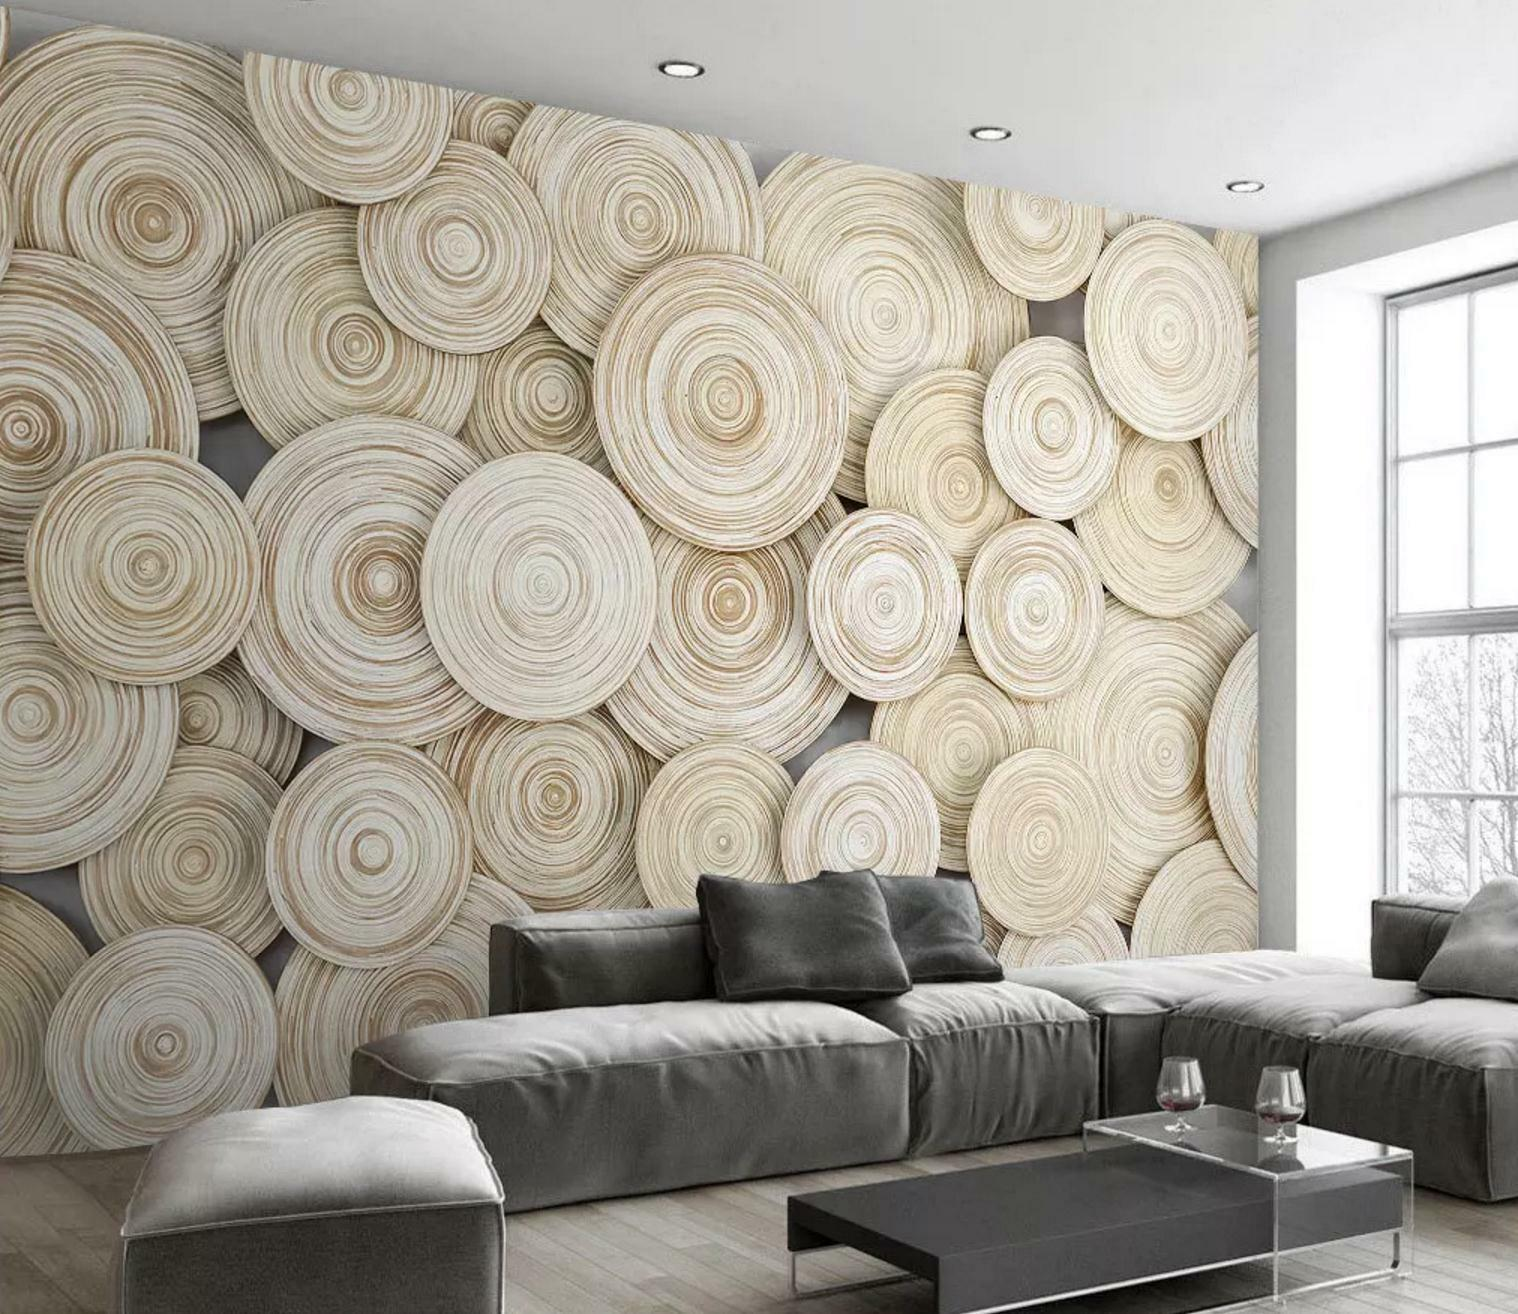 Annual Wood 3D Ring Wall AJ Indoor Decal Mural Wallpaper MXY 1518x1314